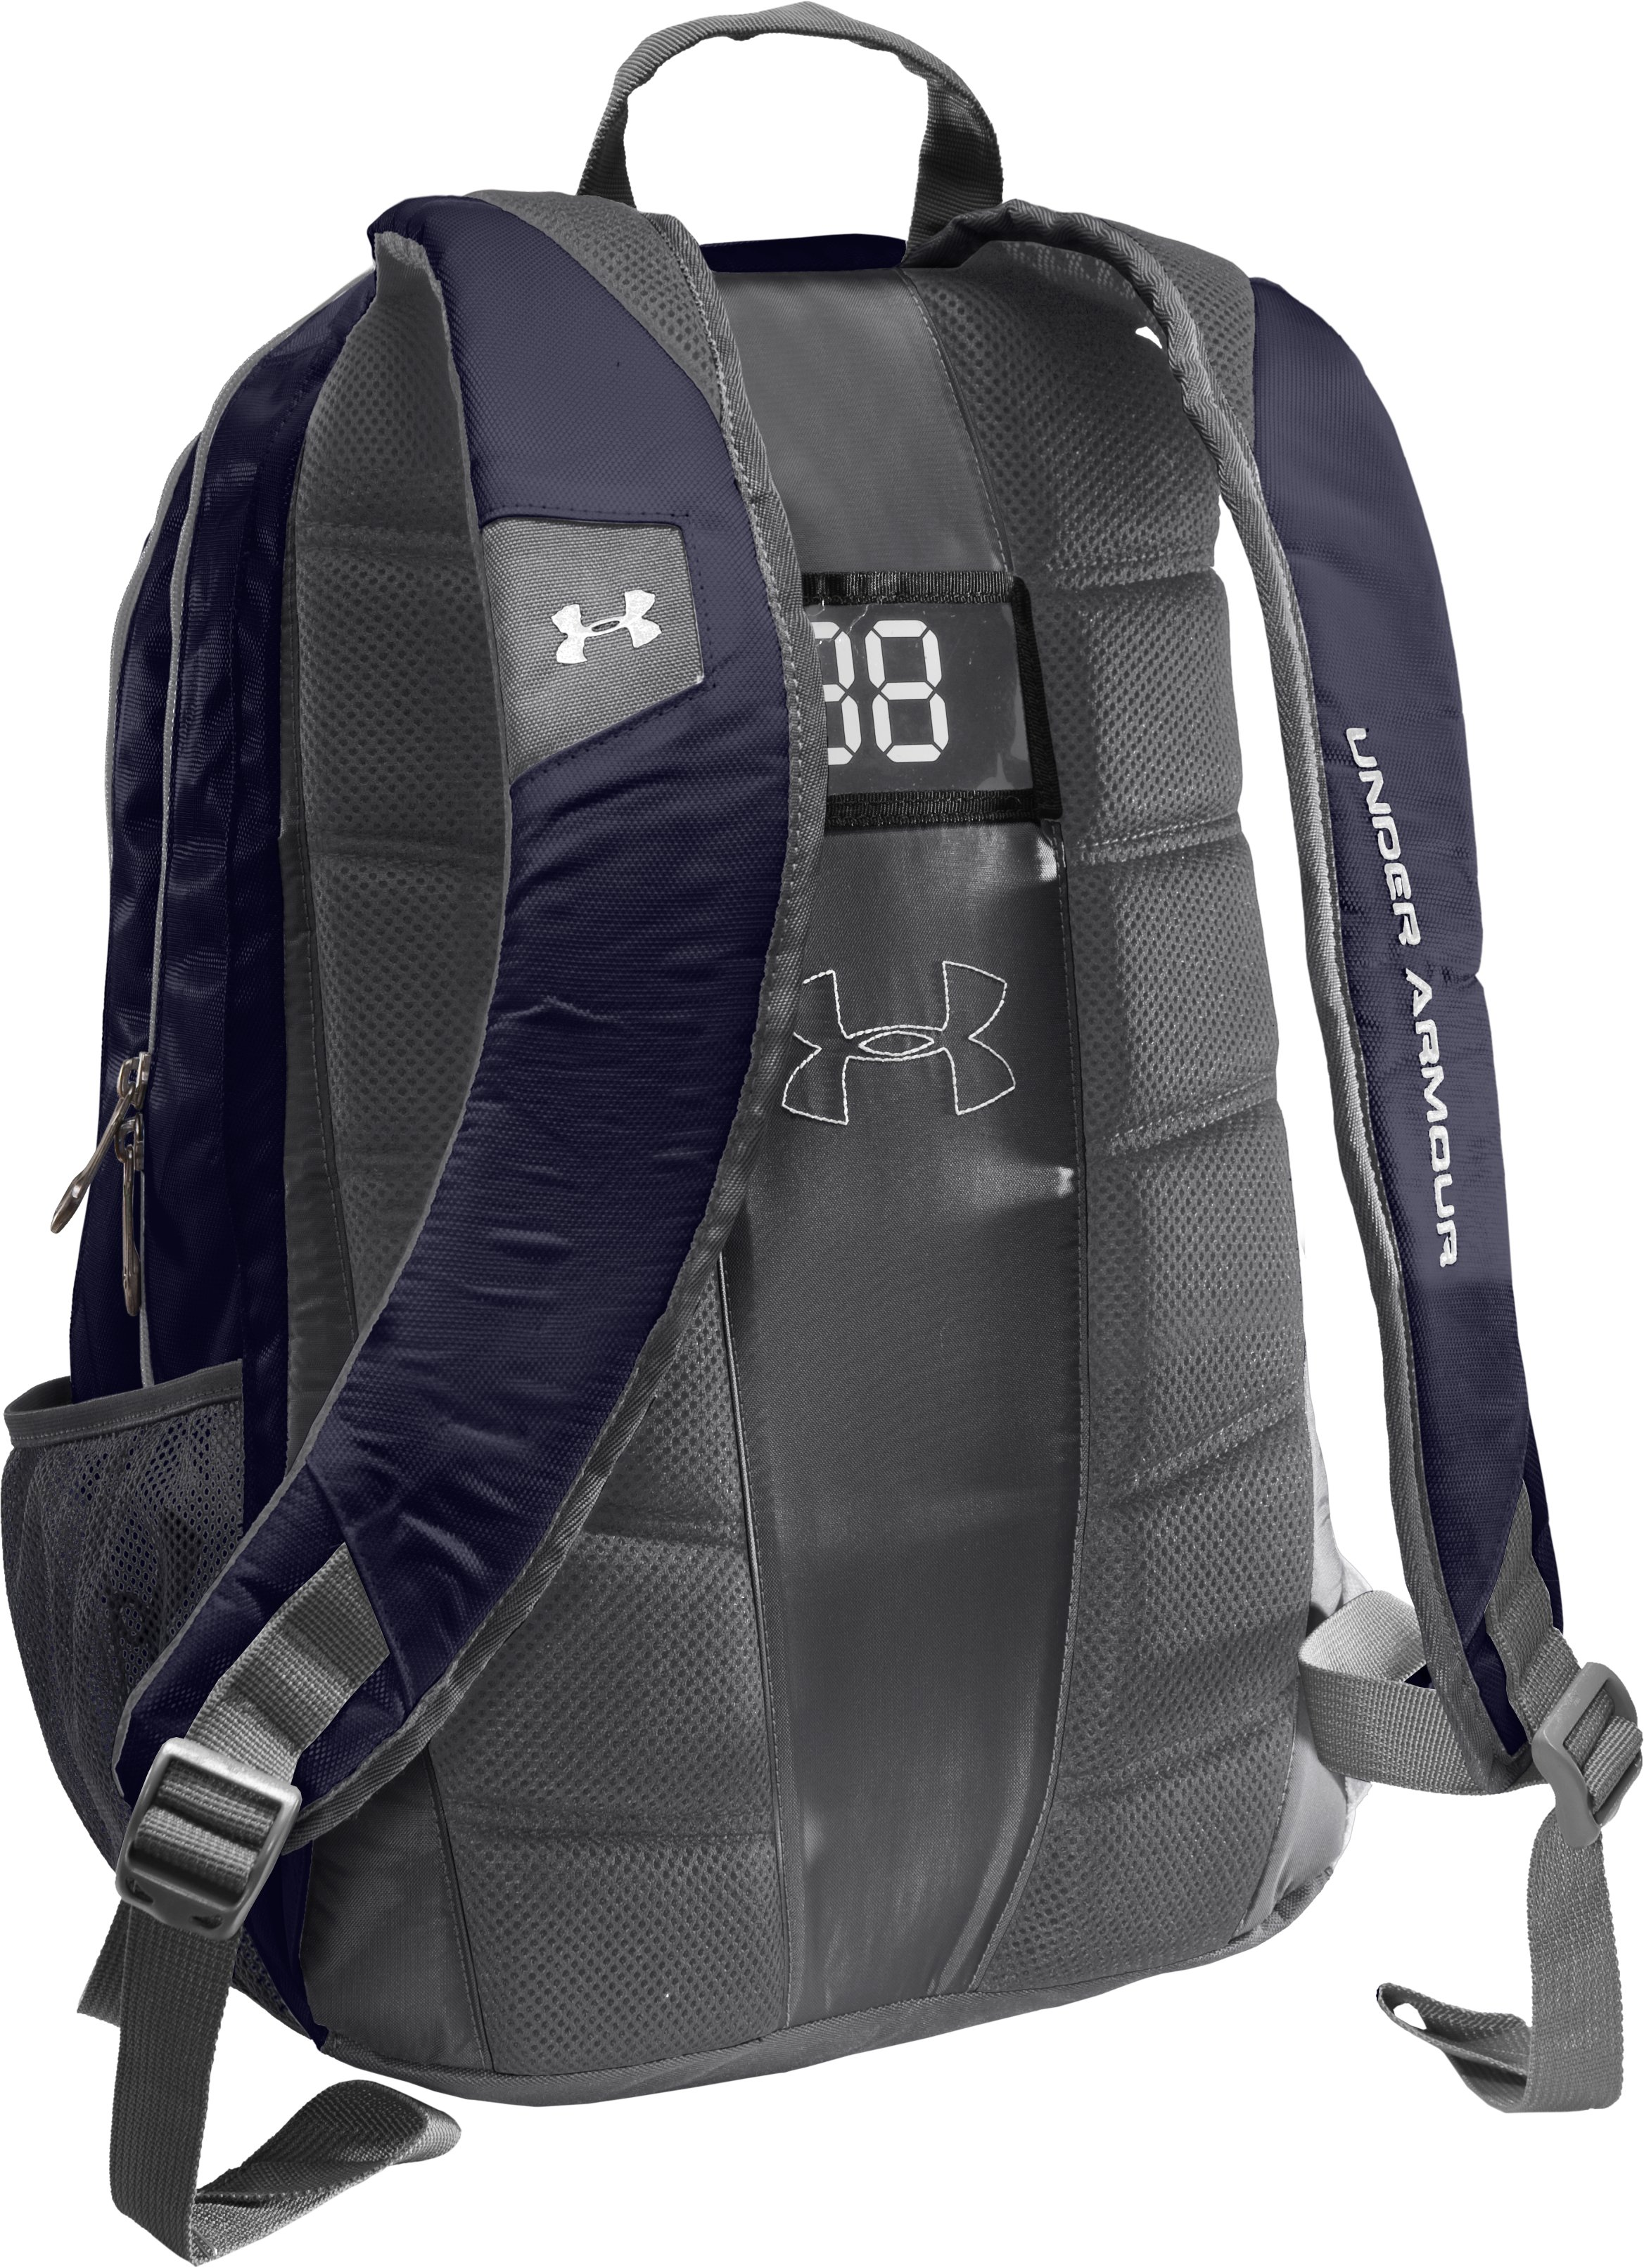 PTH® Victory Backpack, Midnight Navy, undefined